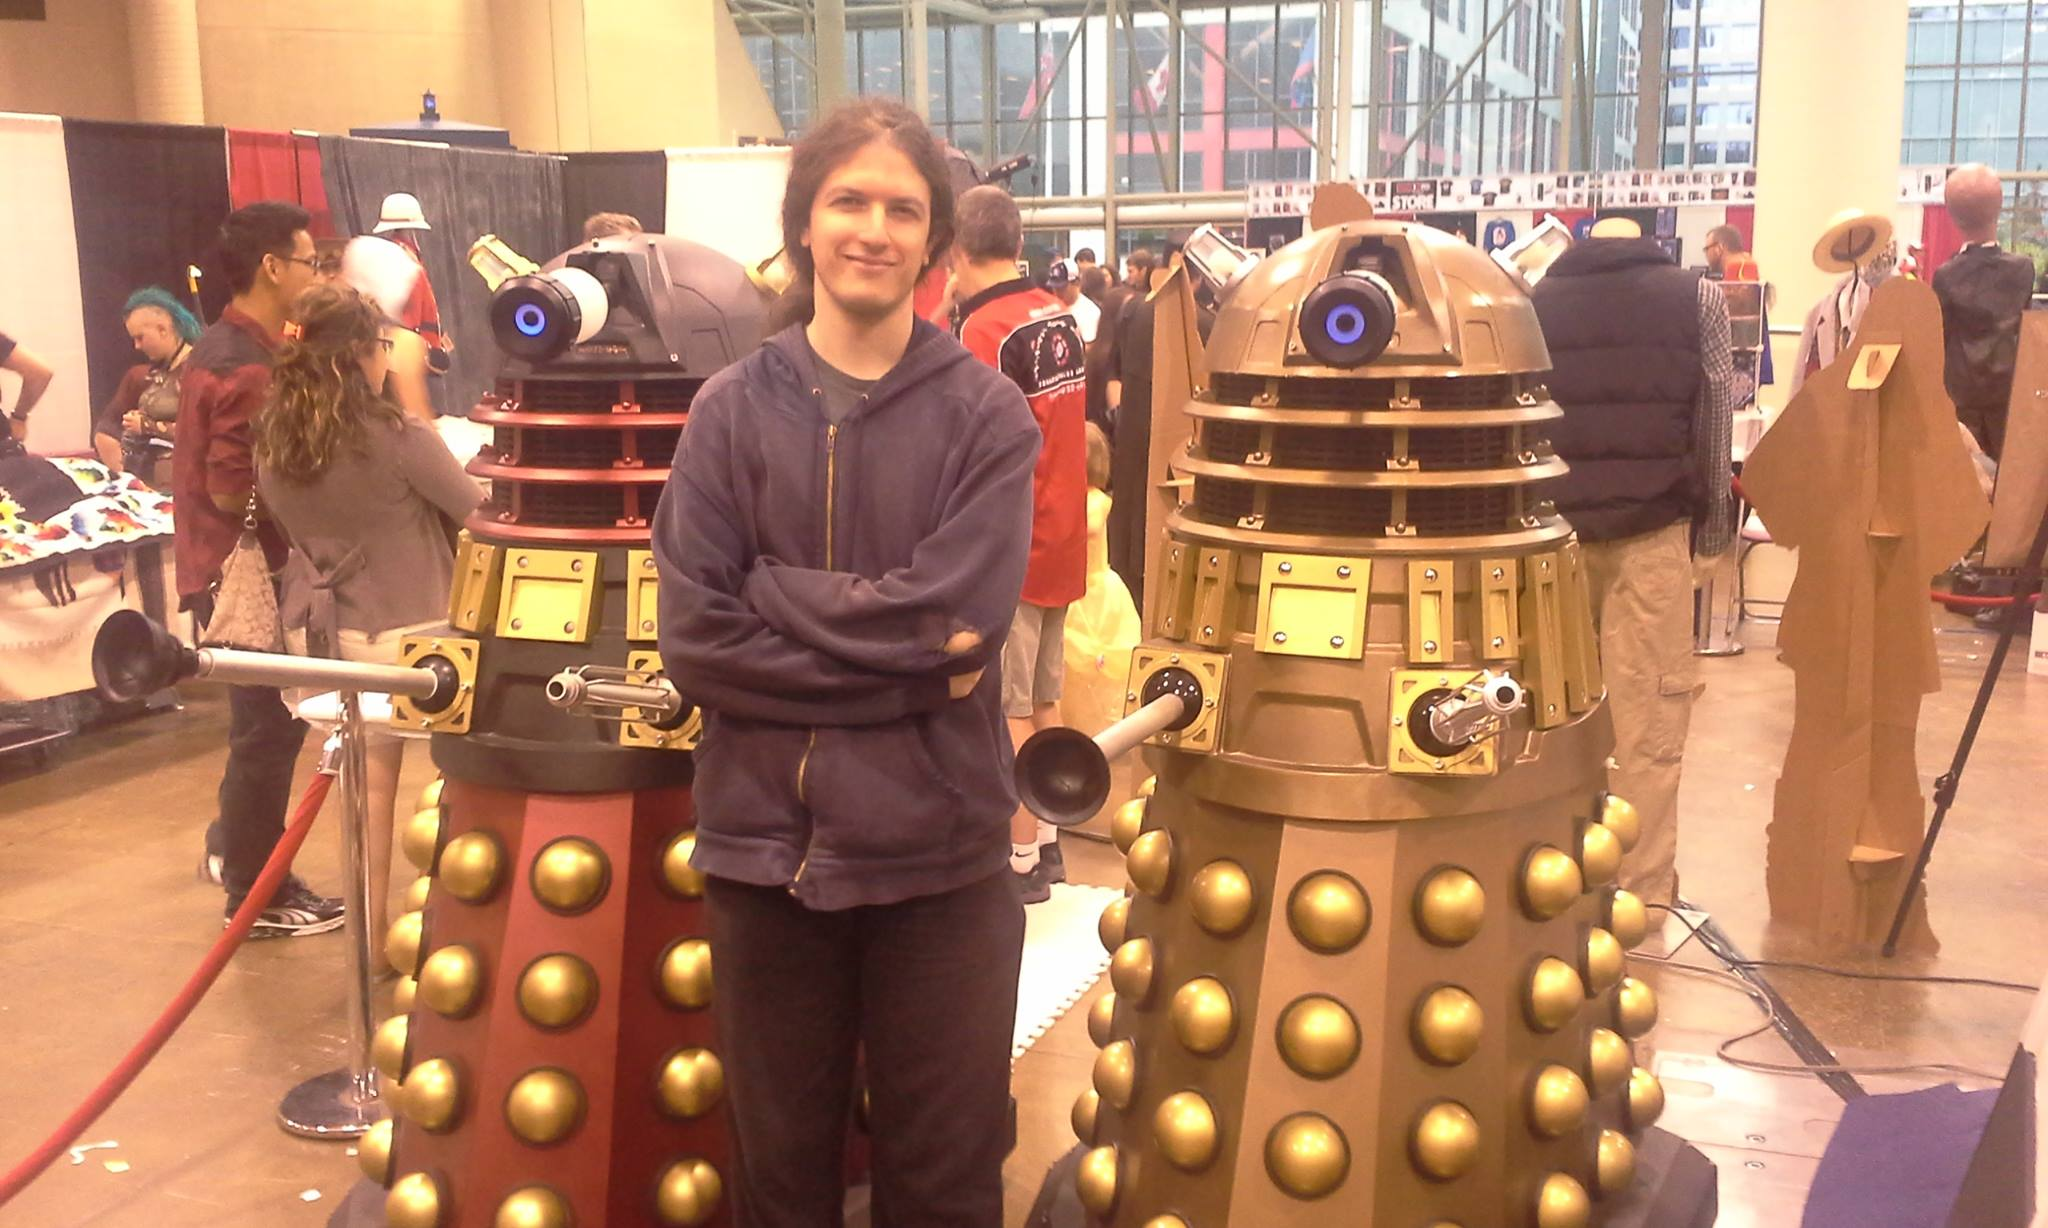 Matthew and the Daleks